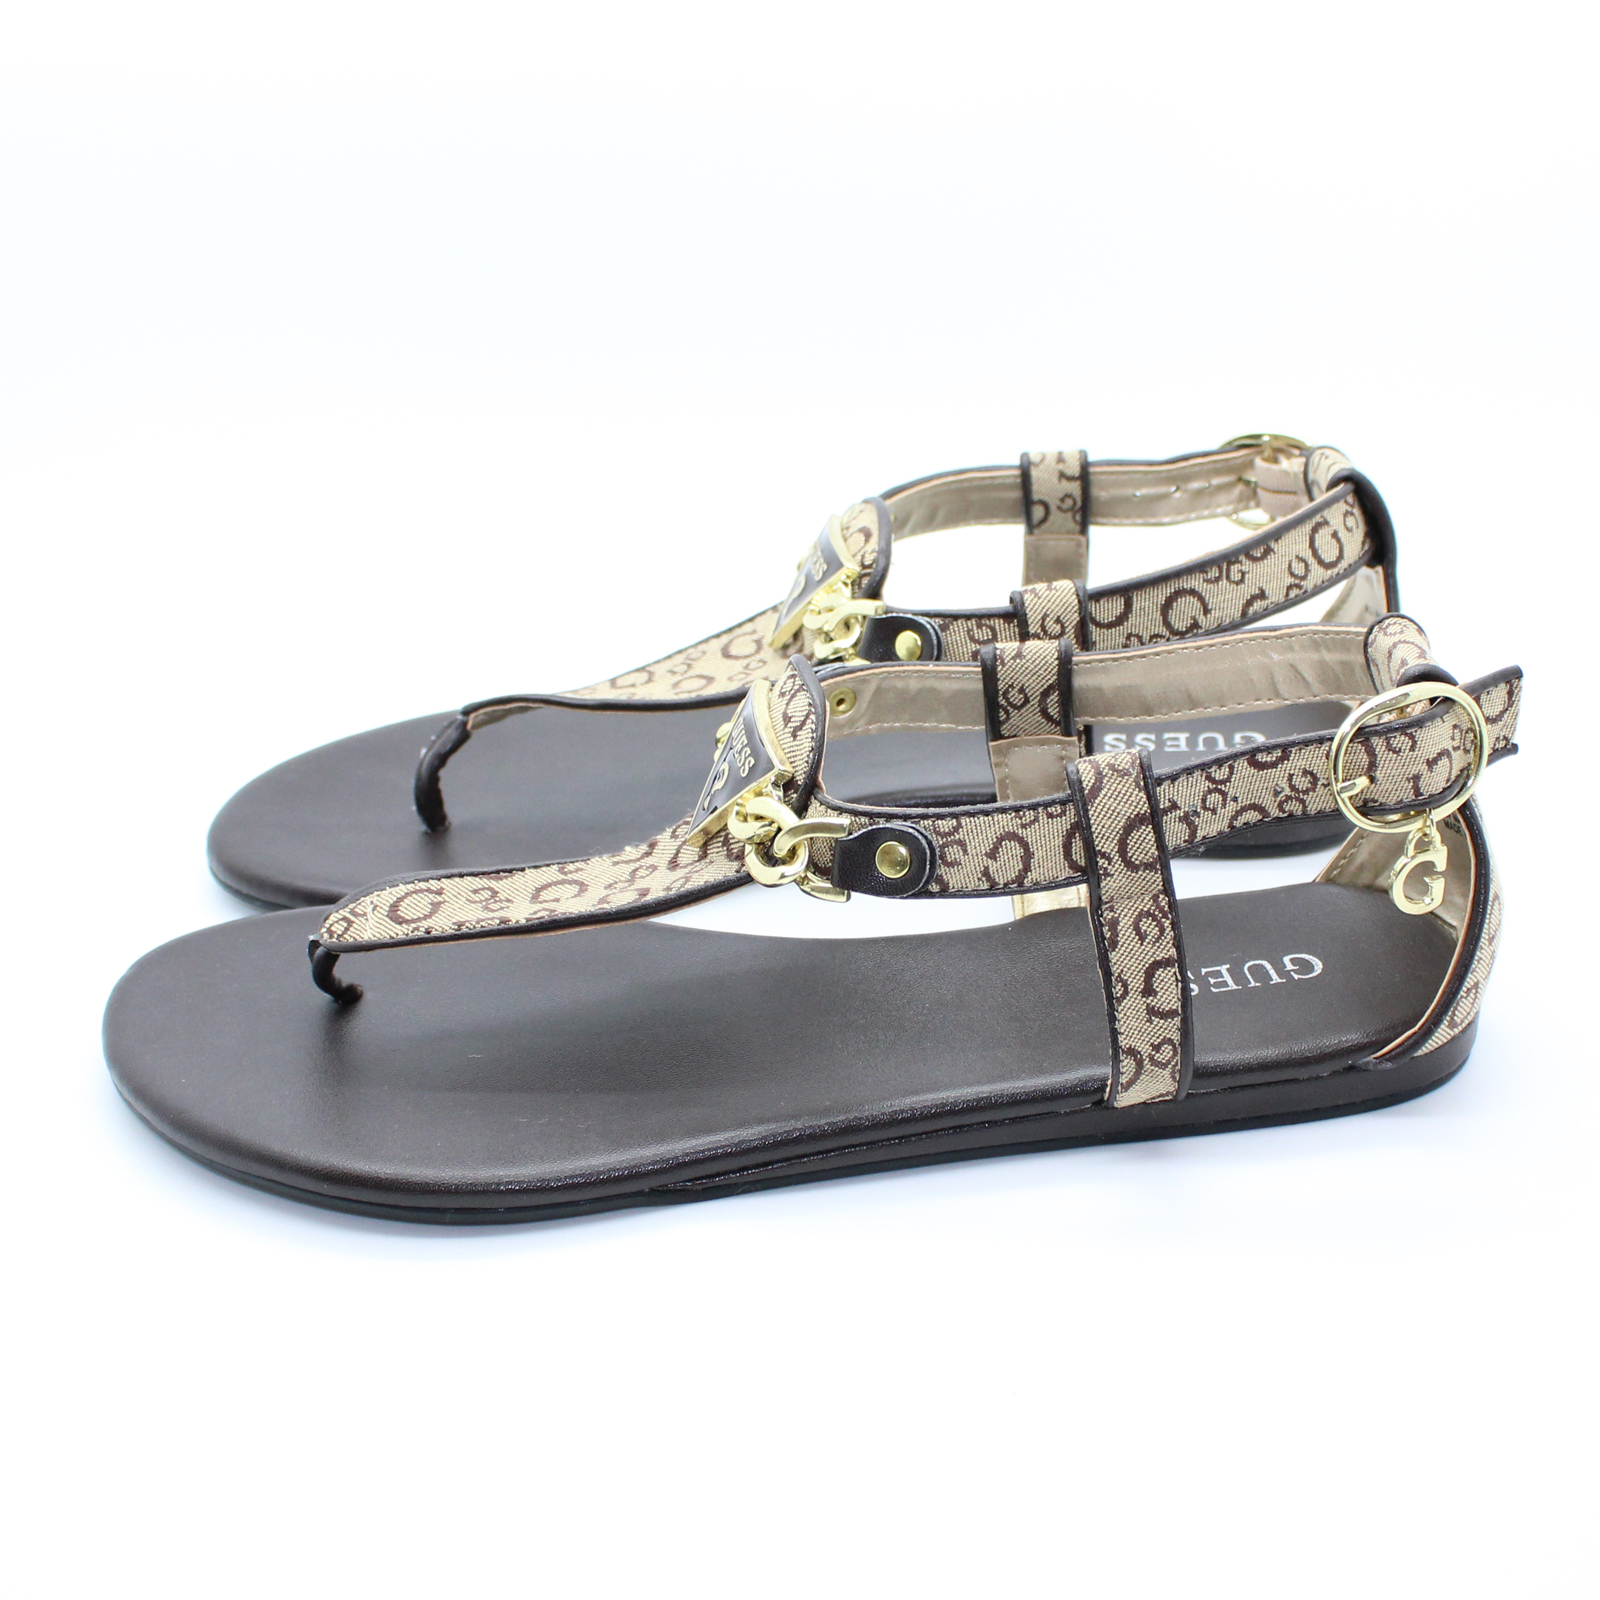 91161ee93383 Pungles - Online Store - Jacquard Fabric Chain Brown Thong T-strap ...